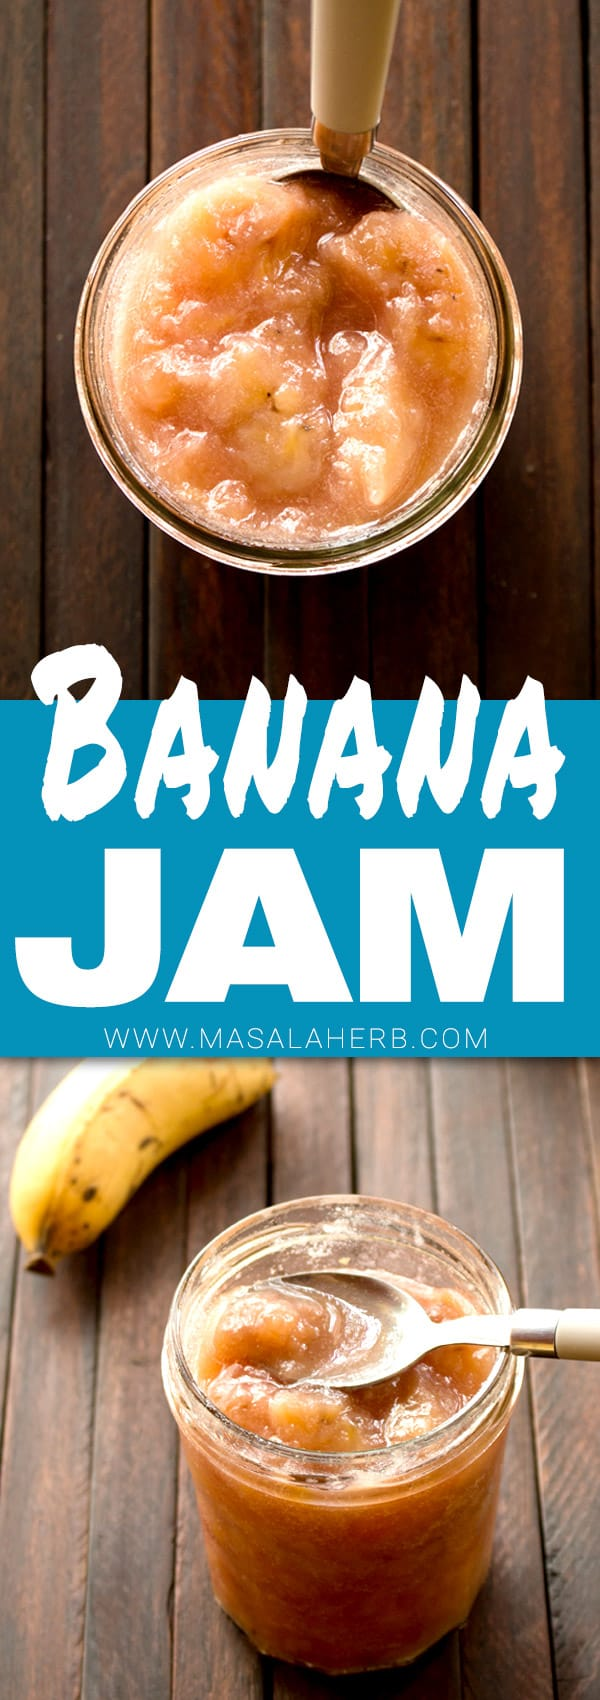 Banana Jam - How to make Banana Jam - Caribbean Banana Jam Recipe {without Pectin} www.MasalaHerb.com #banana #jam #DIY #masalaherb